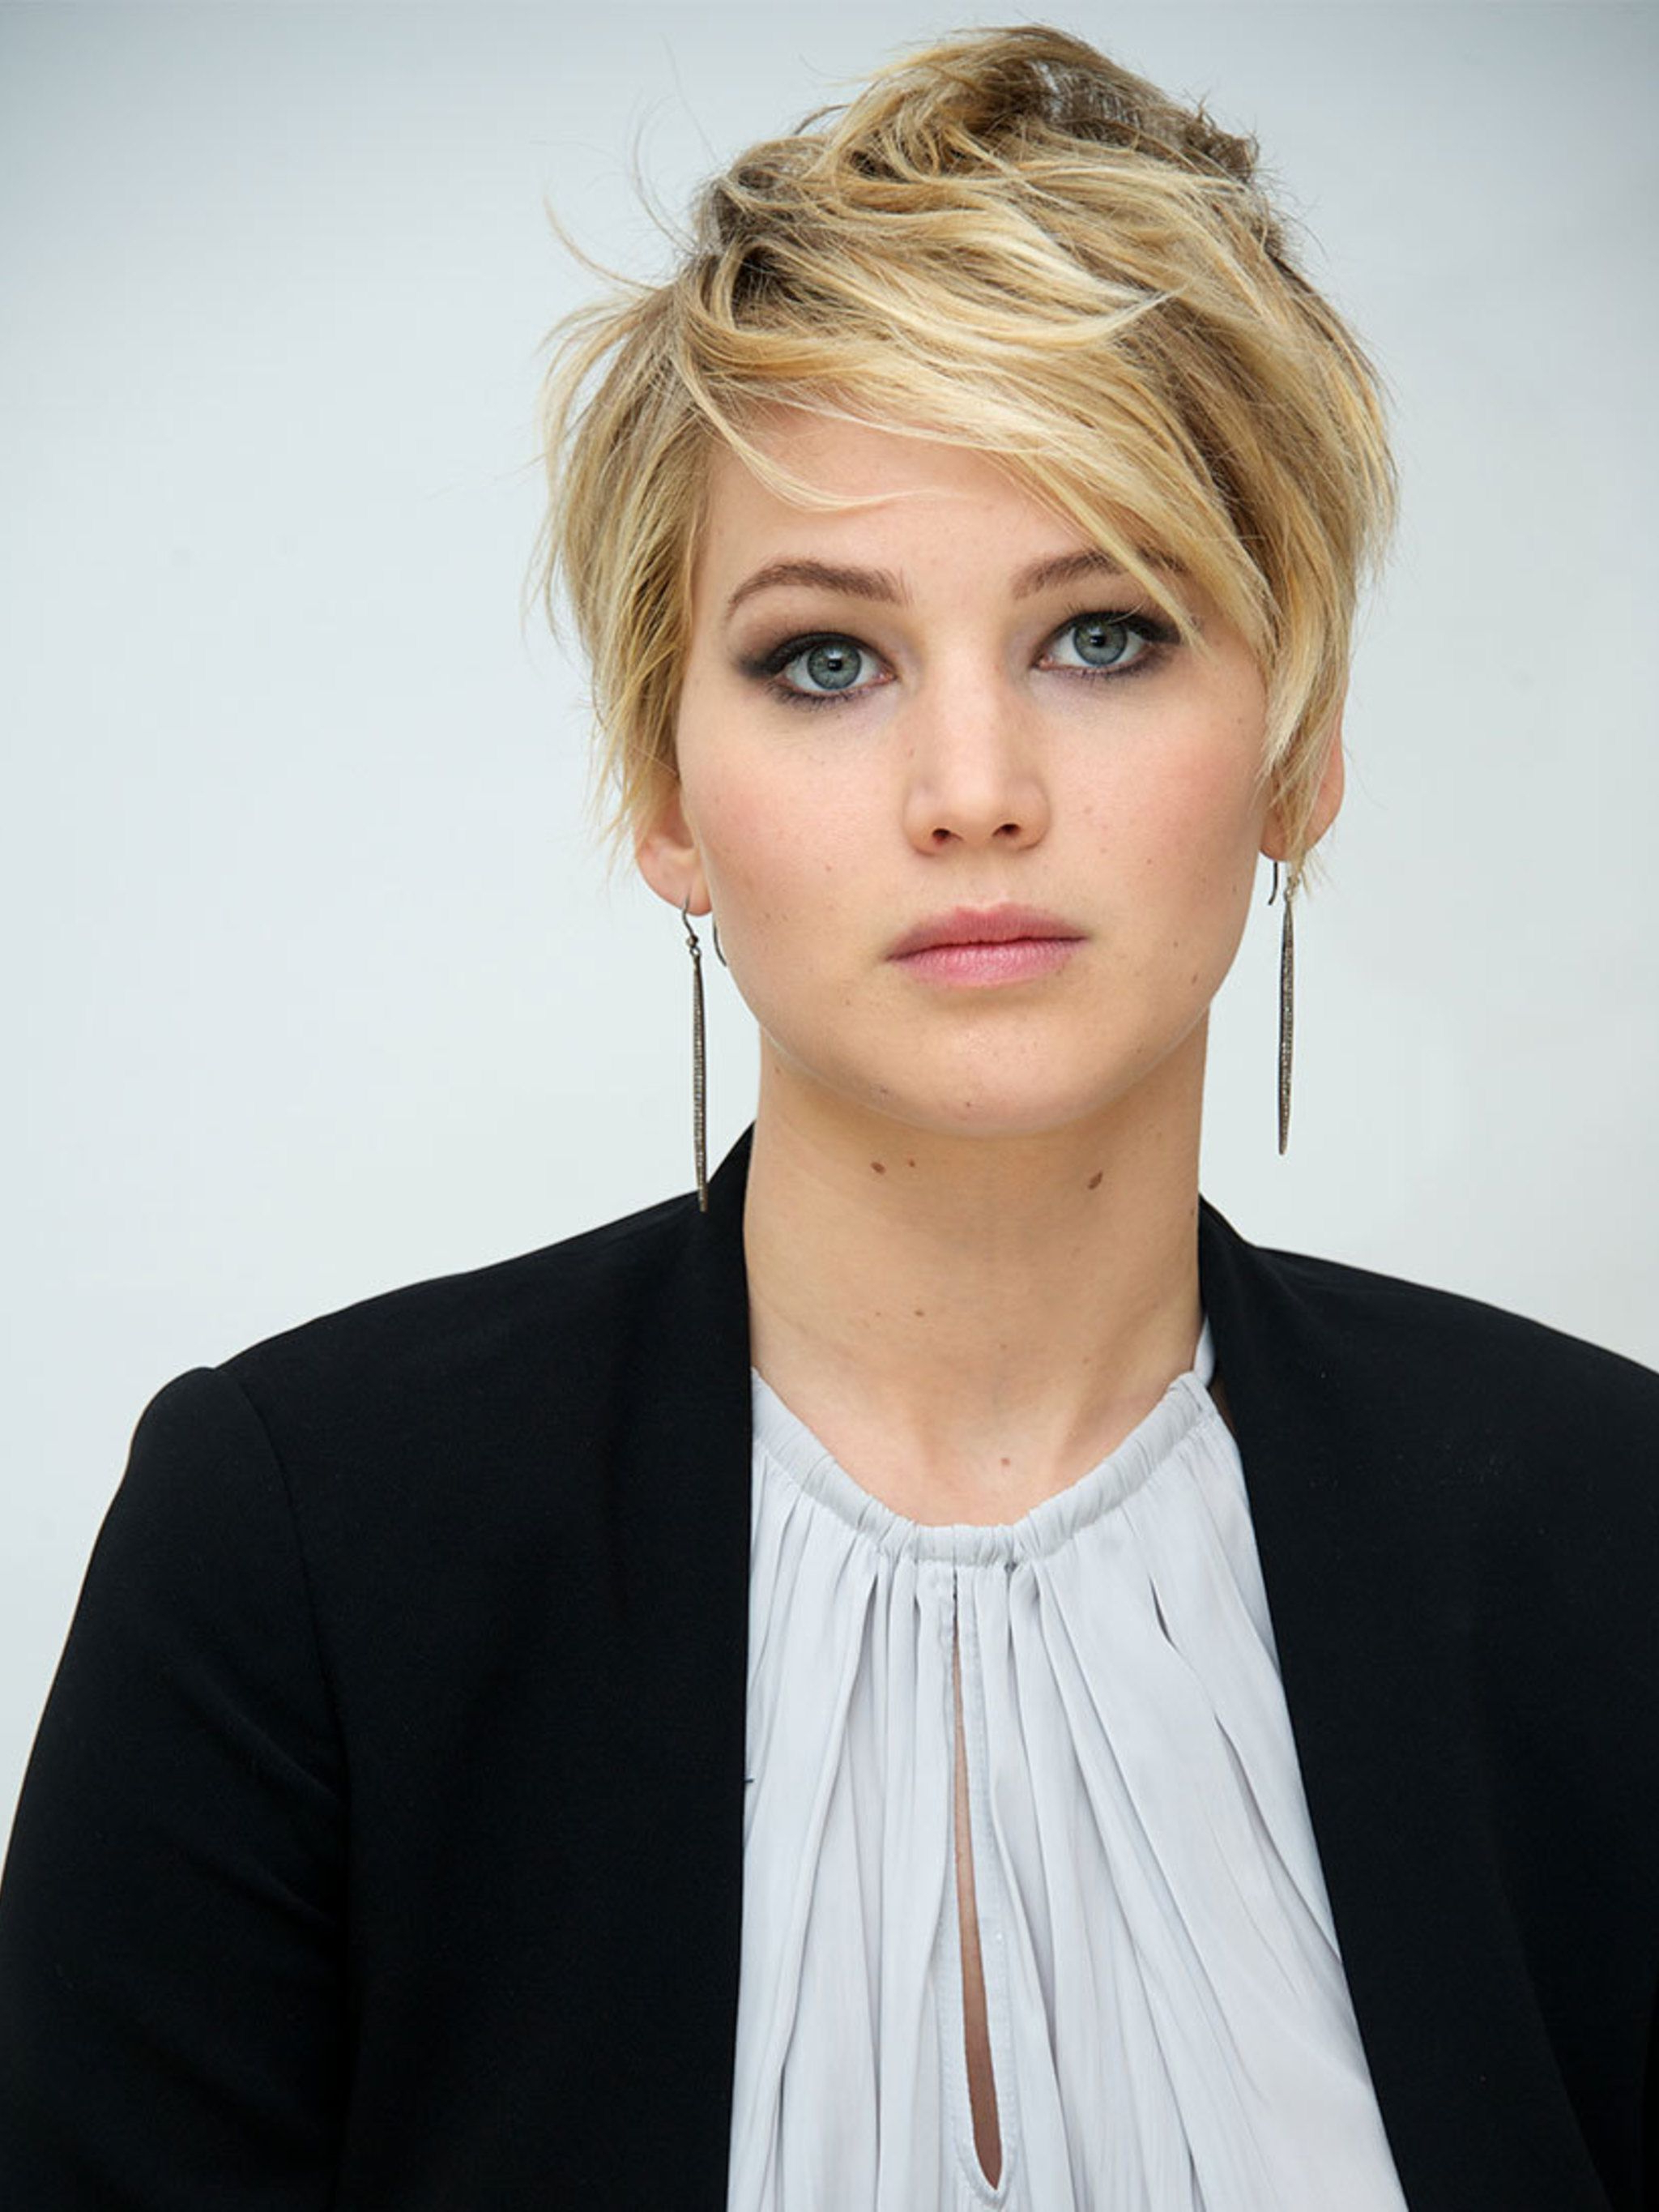 Grow Out Your Hair Like J Law Pertaining To Jennifer Lawrence Short Haircuts (Gallery 14 of 25)